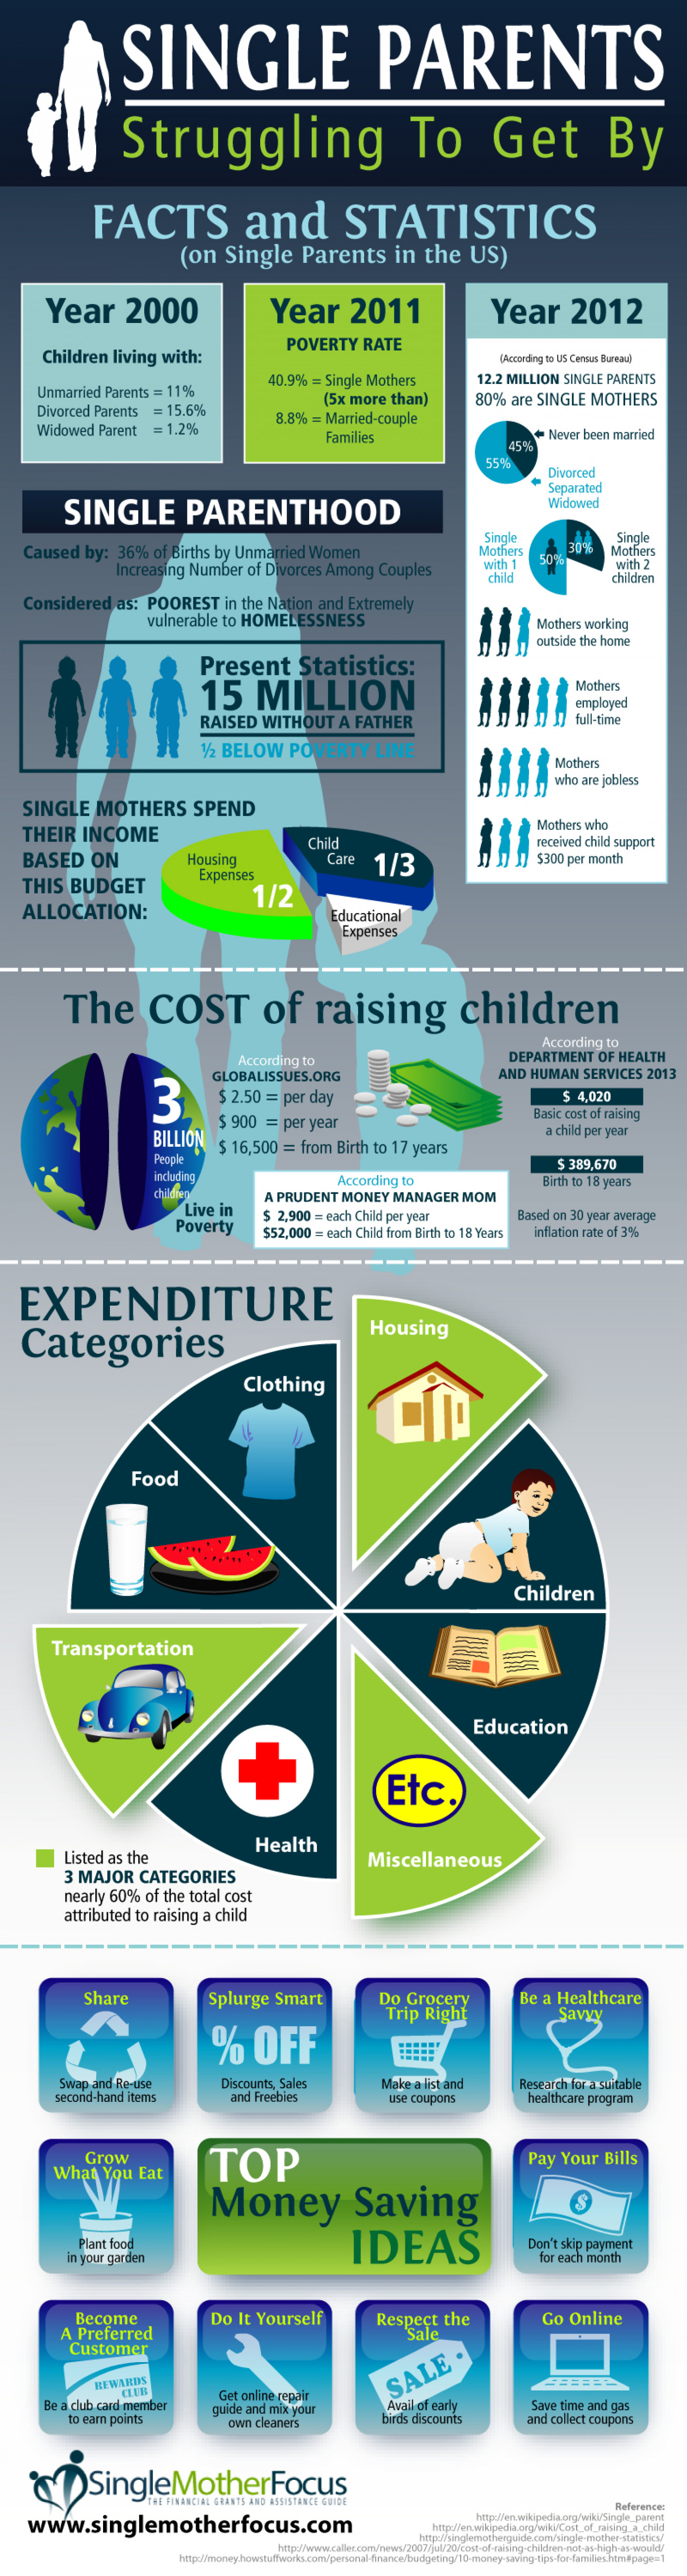 Single Parents Struggling To Get By Infographic